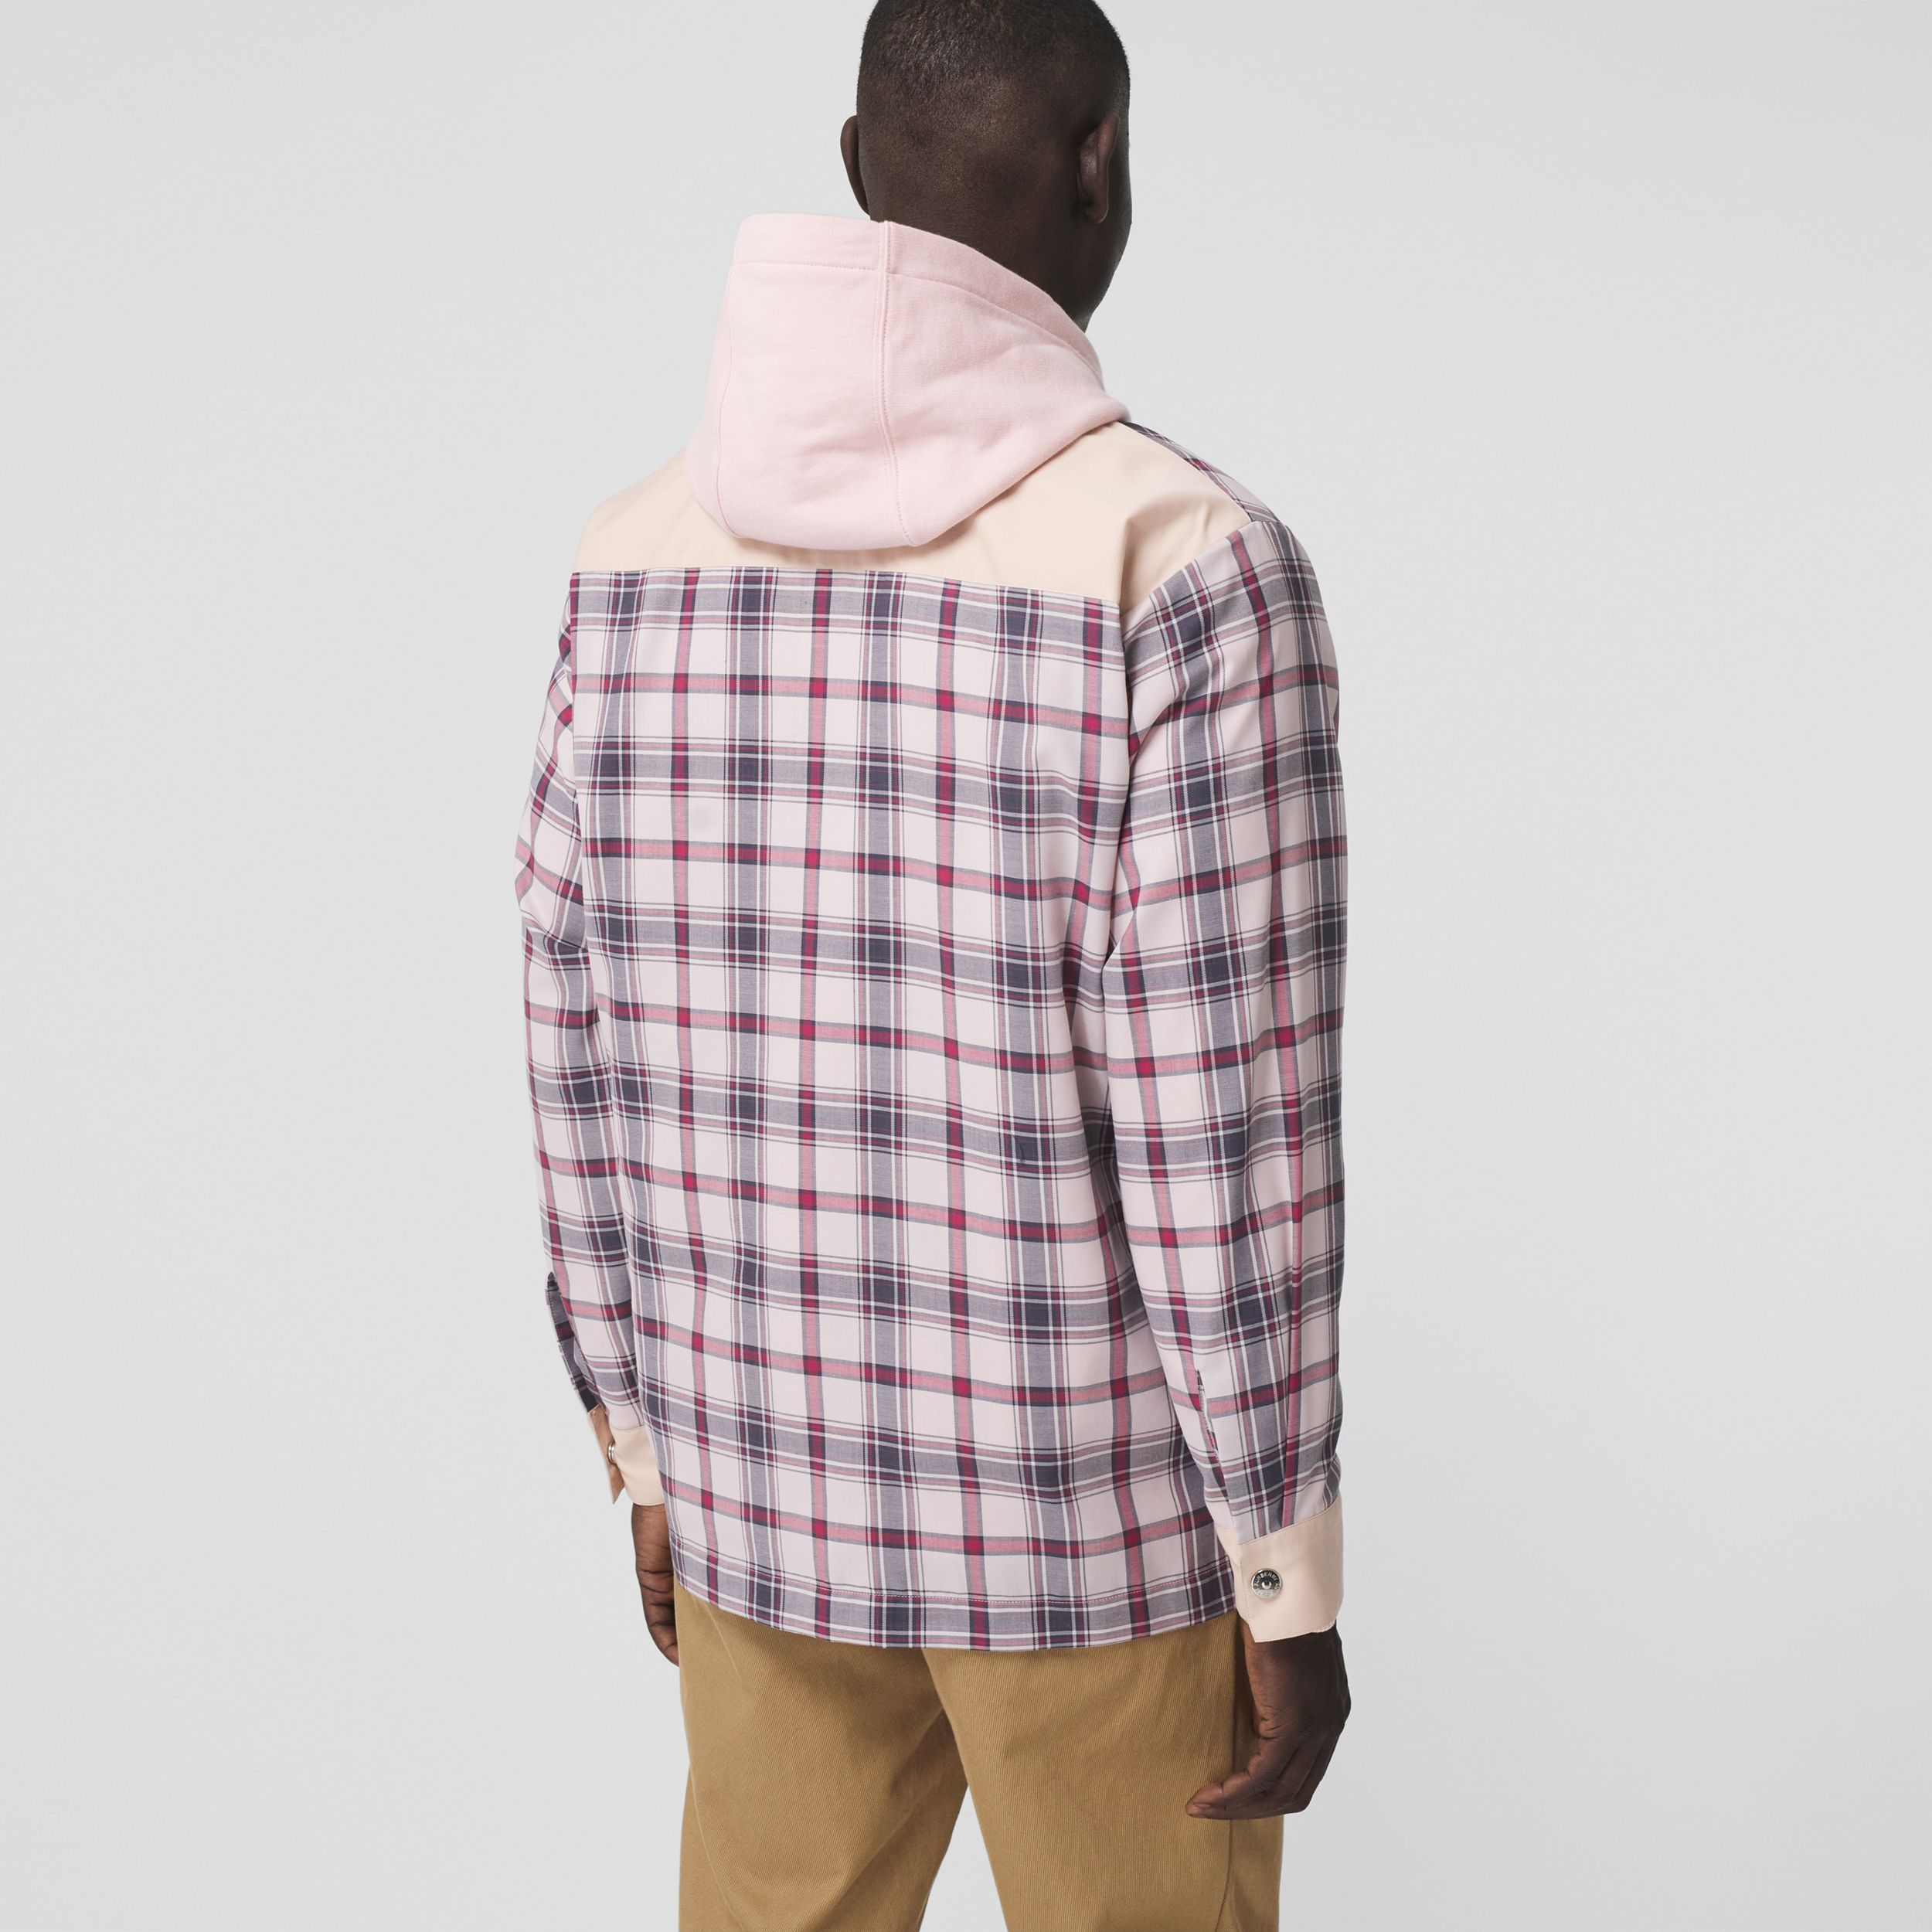 Varsity Graphic Check Technical Cotton Overshirt in Frosted Pink - Men | Burberry Hong Kong S.A.R. - 3